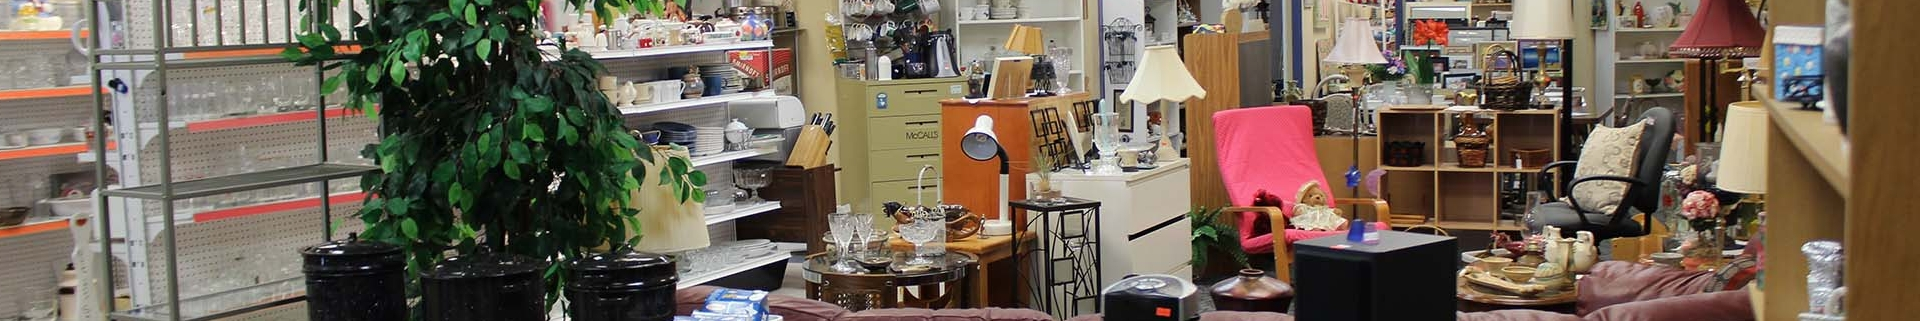 Thrift store setting with many household items and furniture placed throughout the store